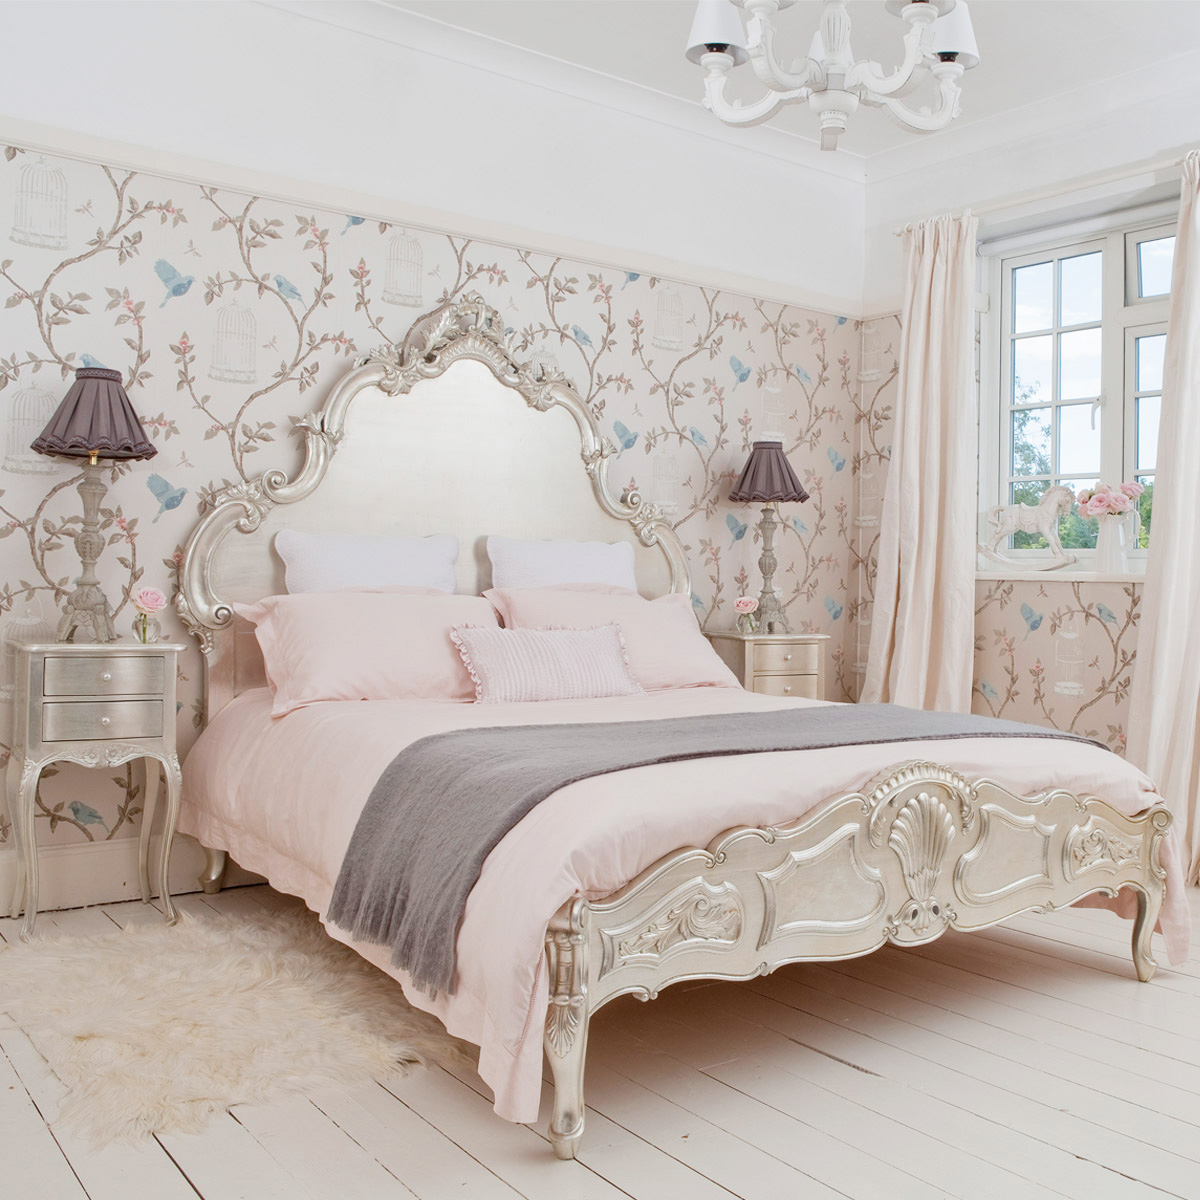 Beautiful Bed French Furniture Art French Furniture Is A Trend To